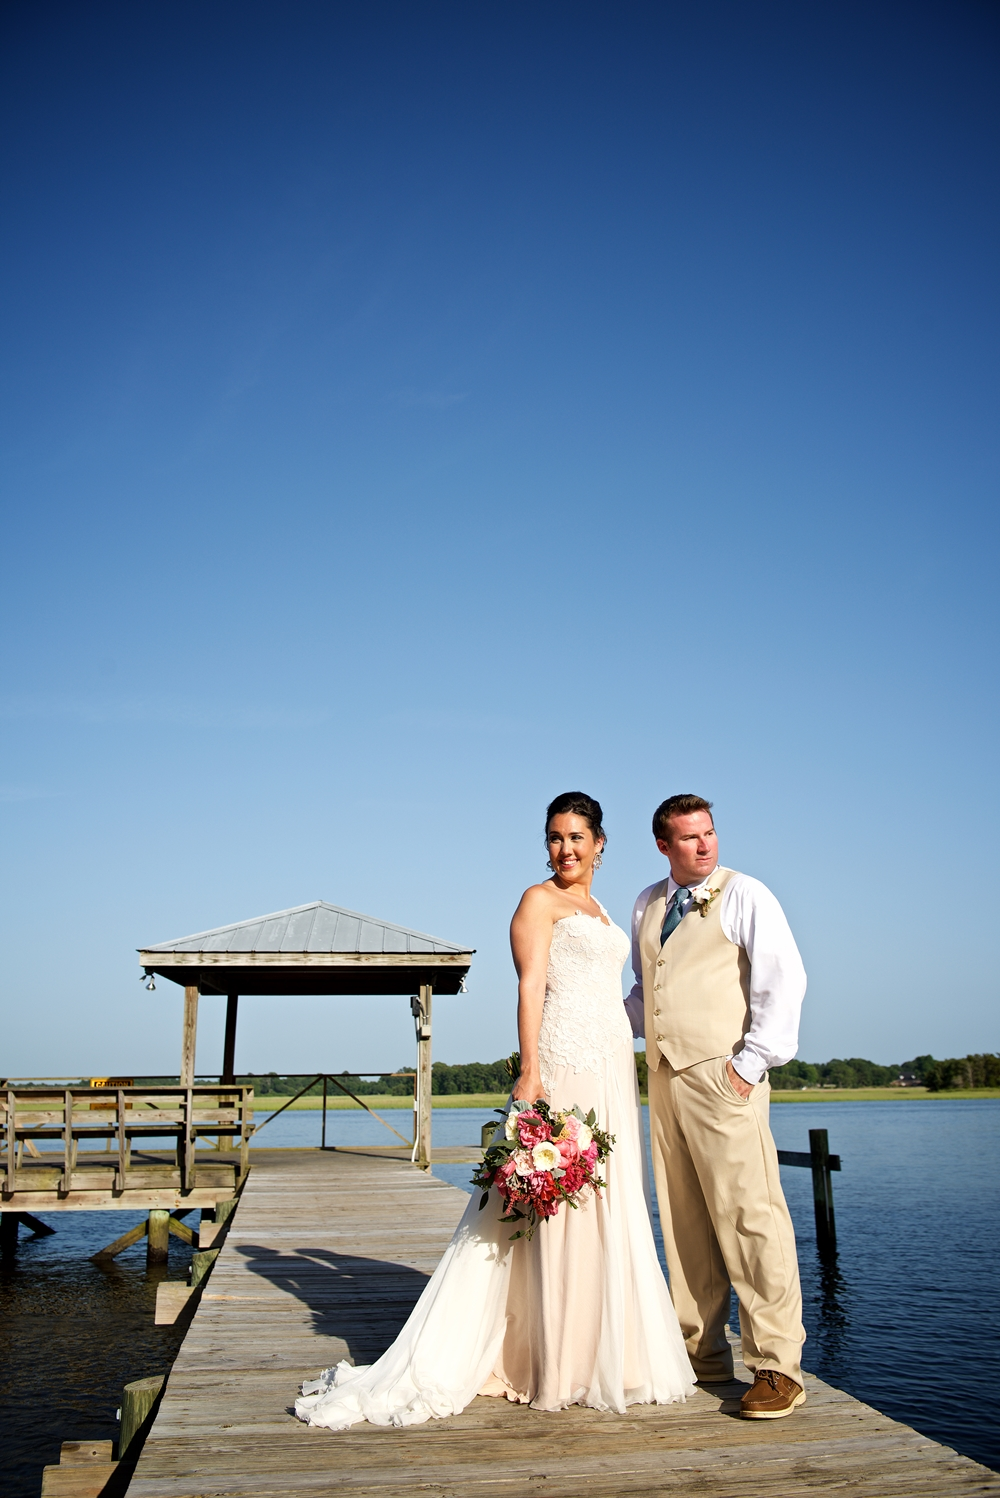 Christine Kohler + Brook Bristow's Summer Charleston wedding at Old Wide Awake Plantation by Yoj Events and Stephen Blackmon Photo + Cinema